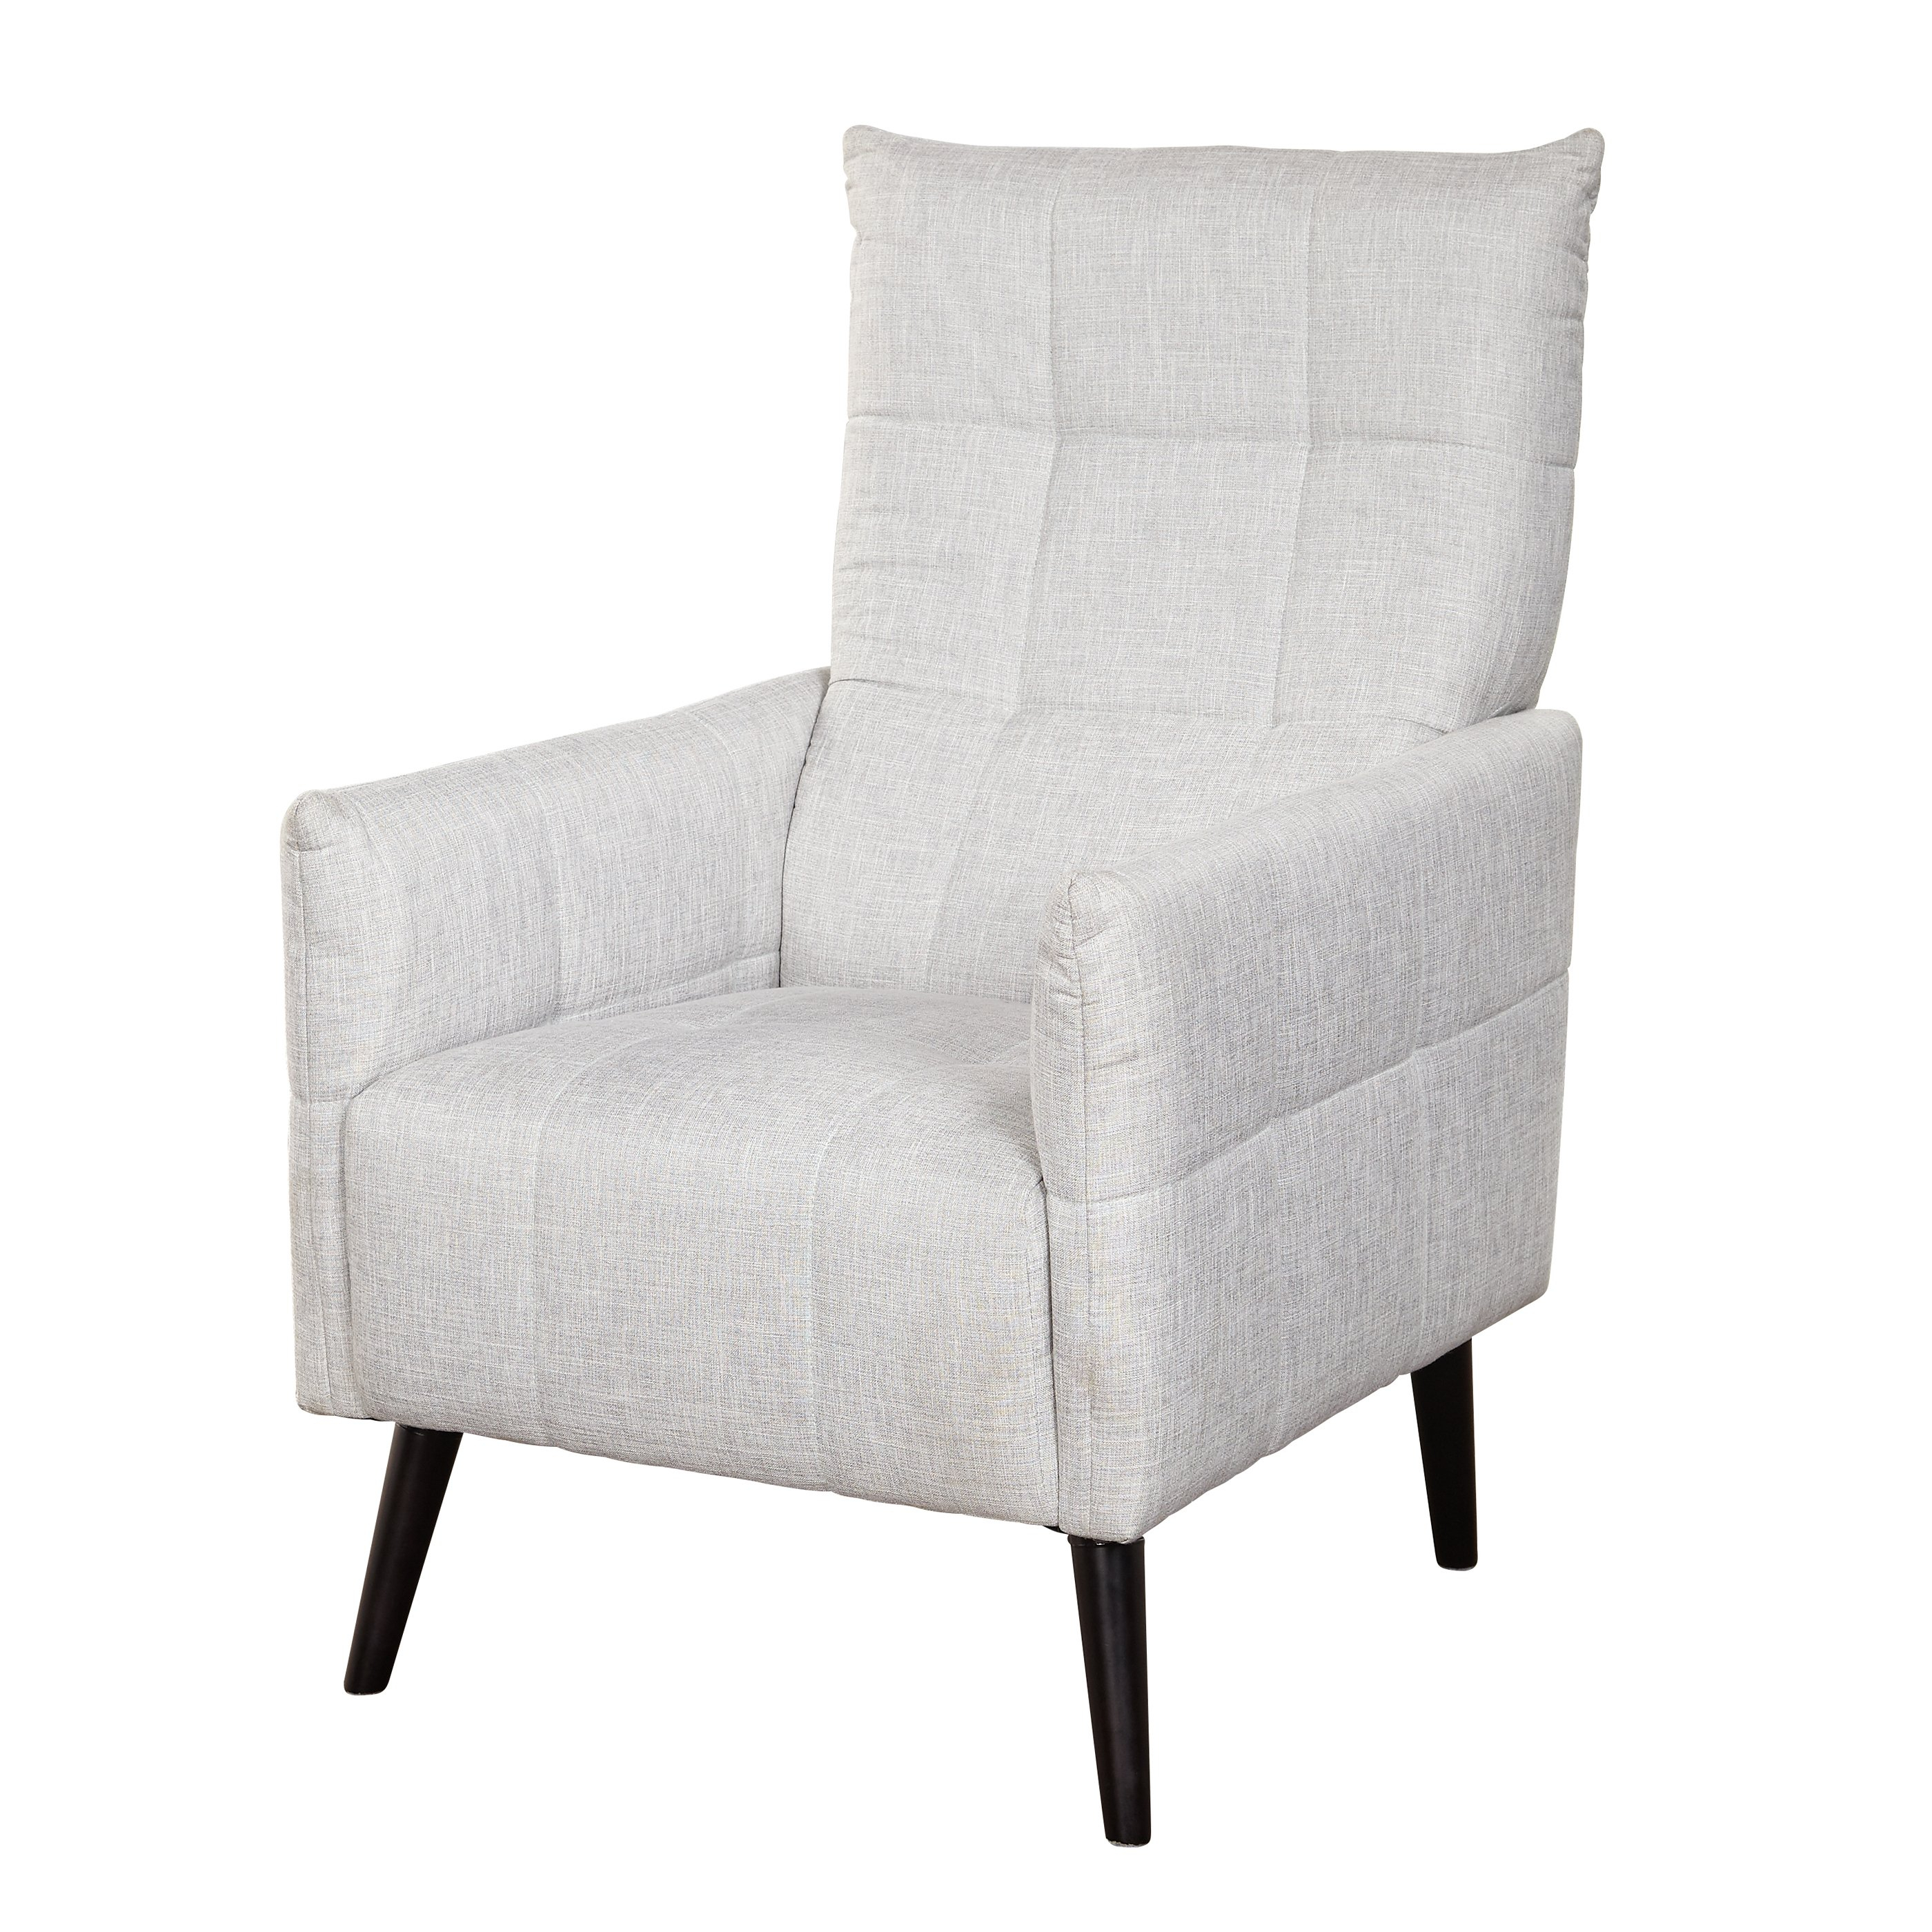 Shop Simple Living Gwen Mid Century Accent Chair – Free Shipping Intended For Gwen Sofa Chairs (View 8 of 25)